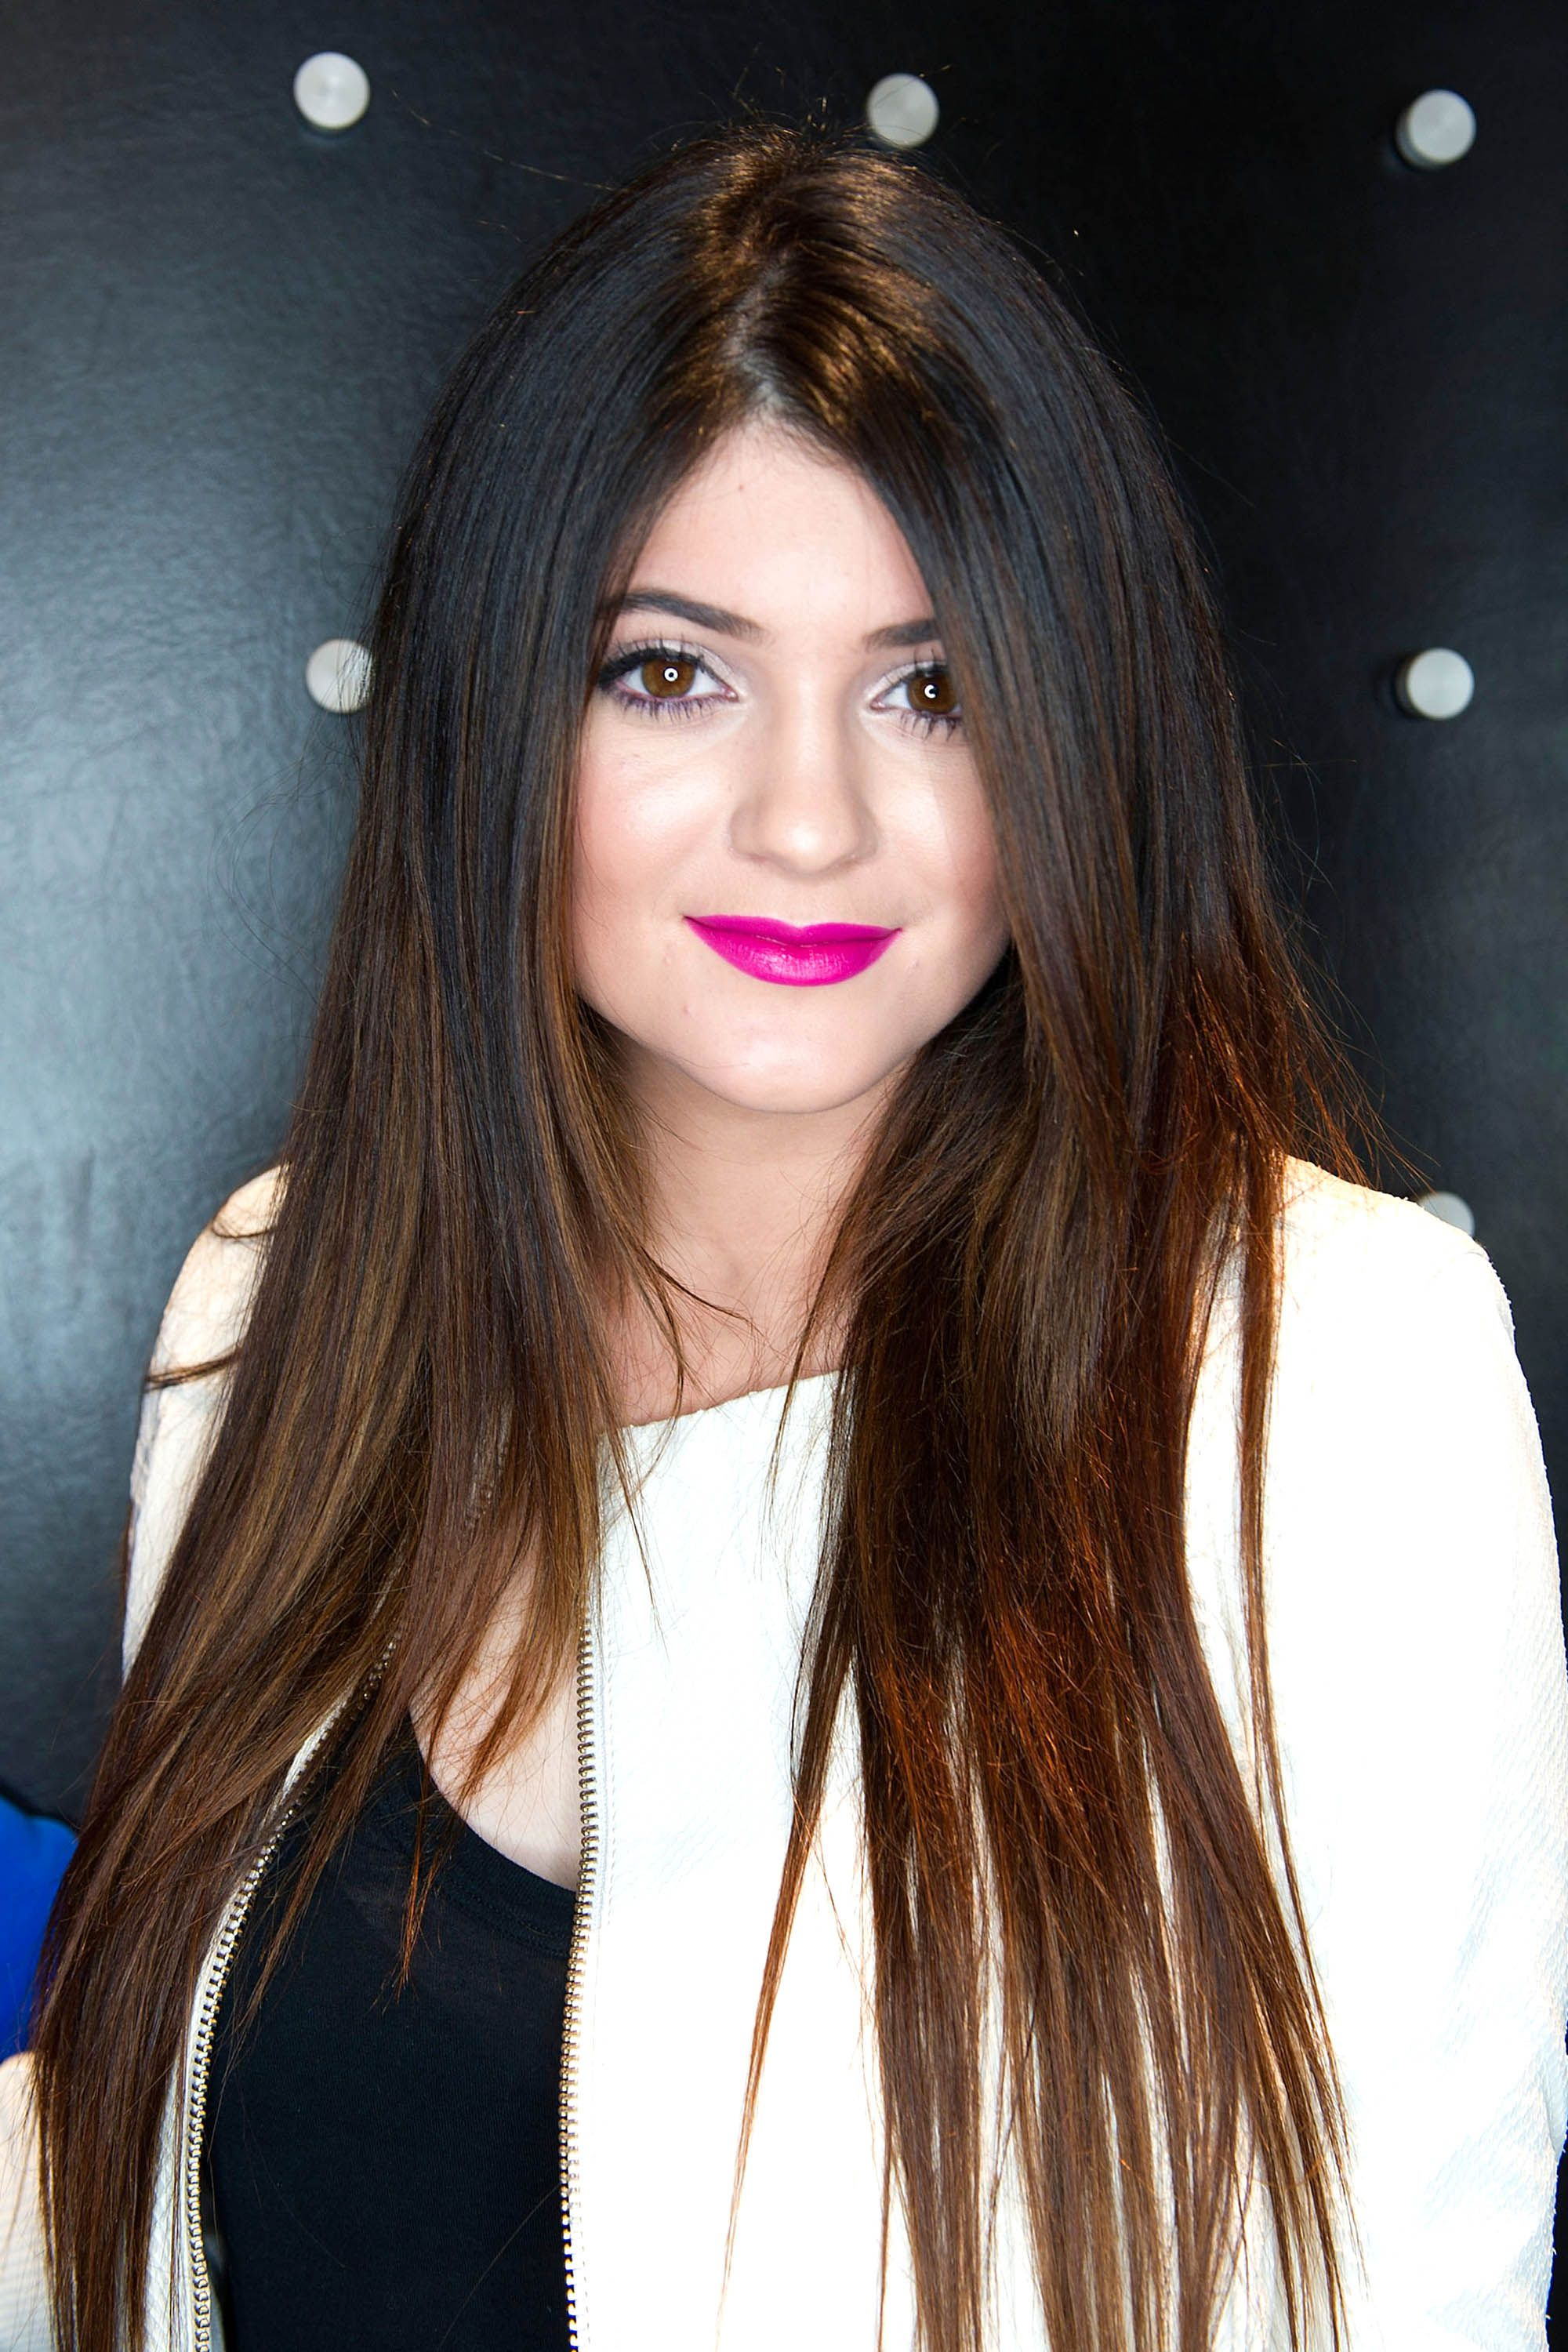 50 Best Kylie Jenner Hair Looks – The Best Hairstyles Of Kylie Jenner Pertaining To 2017 Kylie Jenner Medium Haircuts (View 5 of 20)